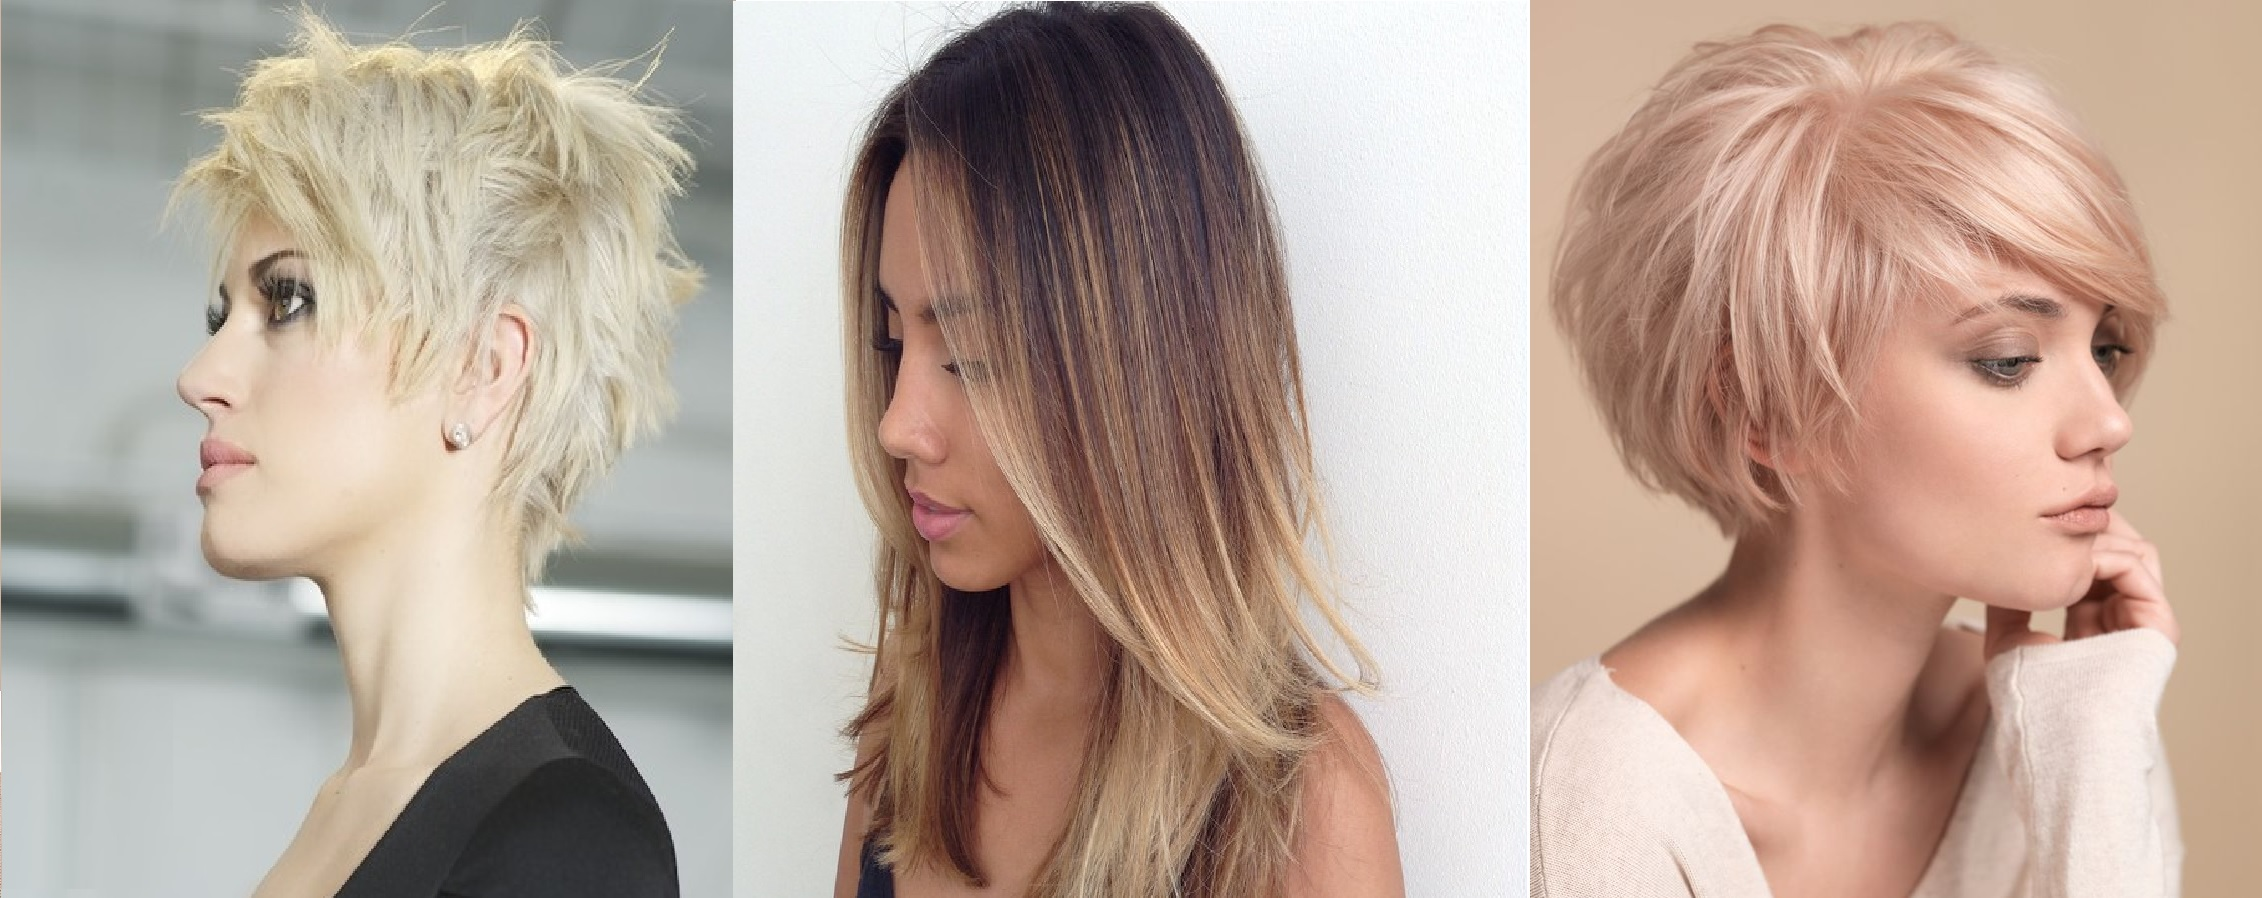 30 Simple Hairstyles For Women In 2019